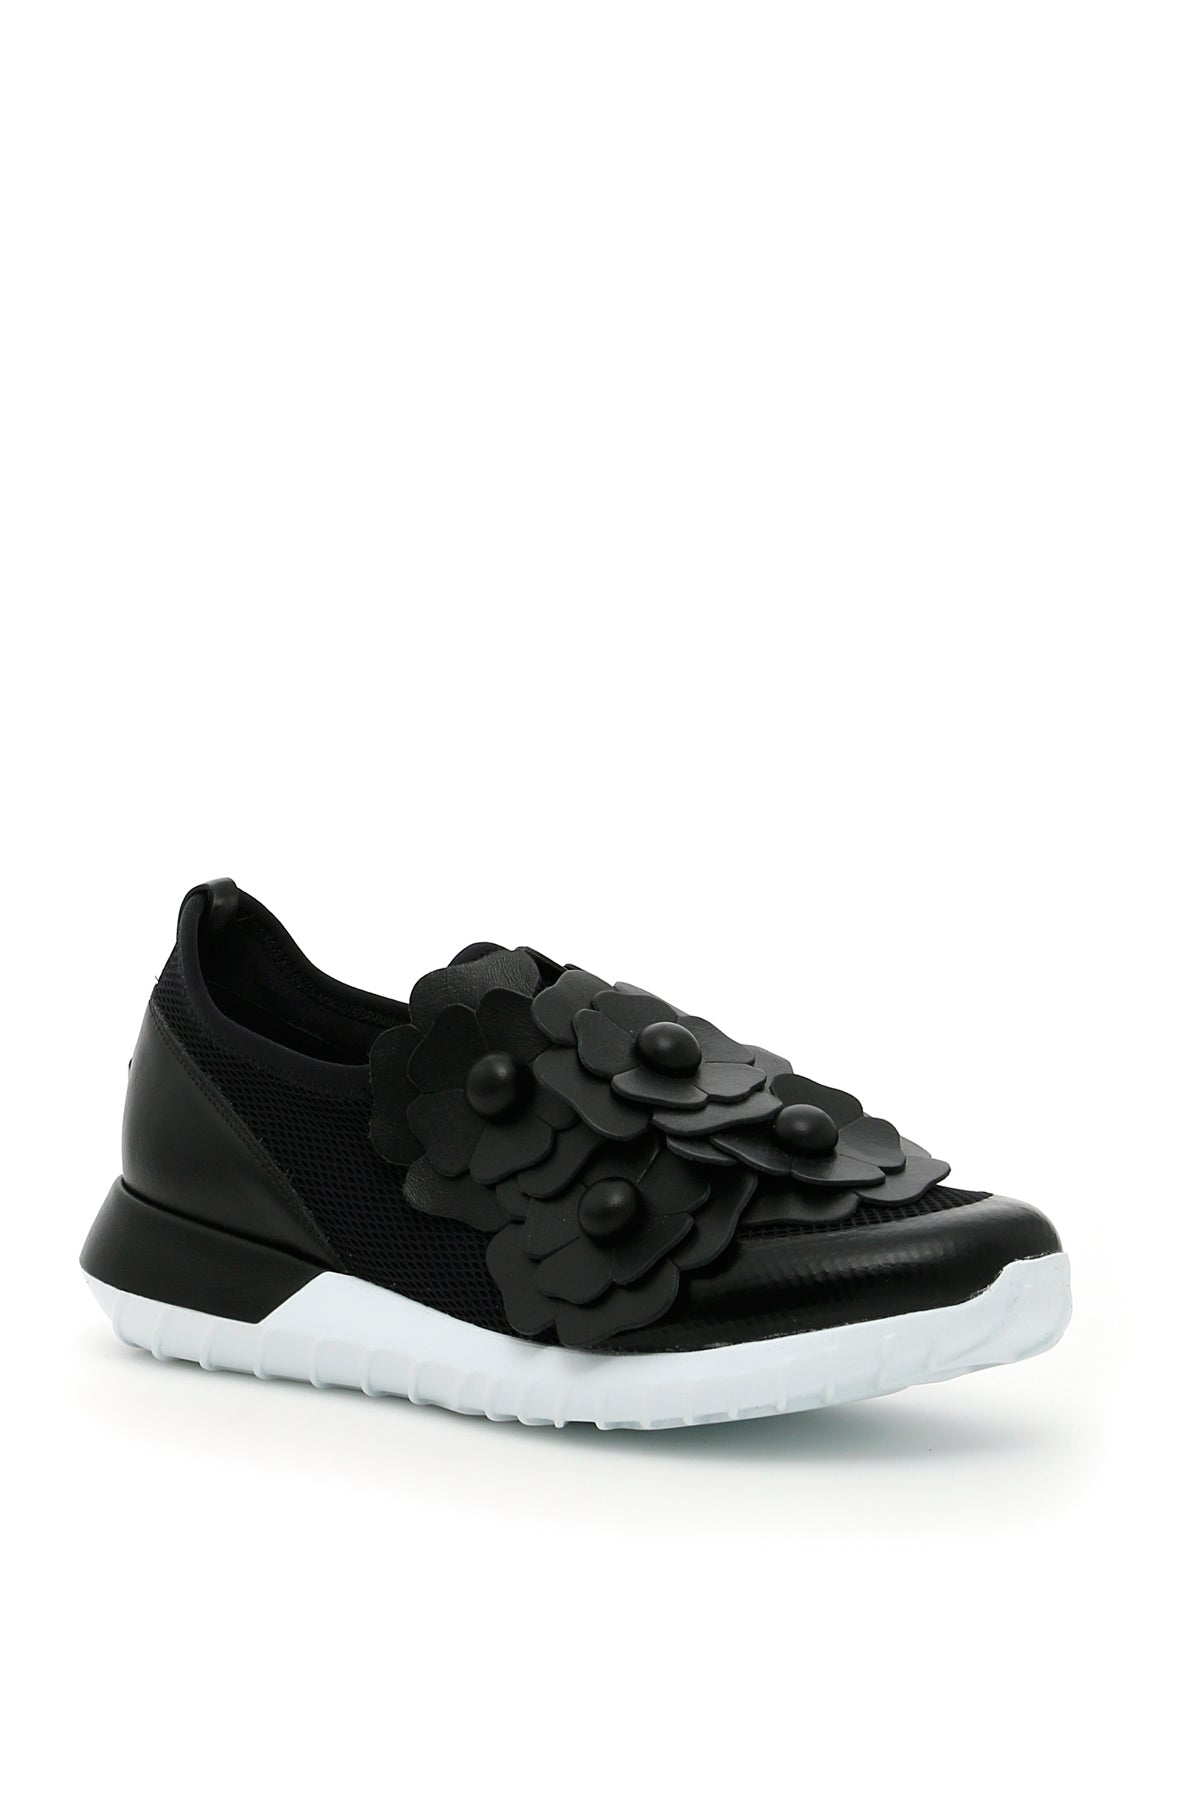 MONCLER EMY SNEAKERS